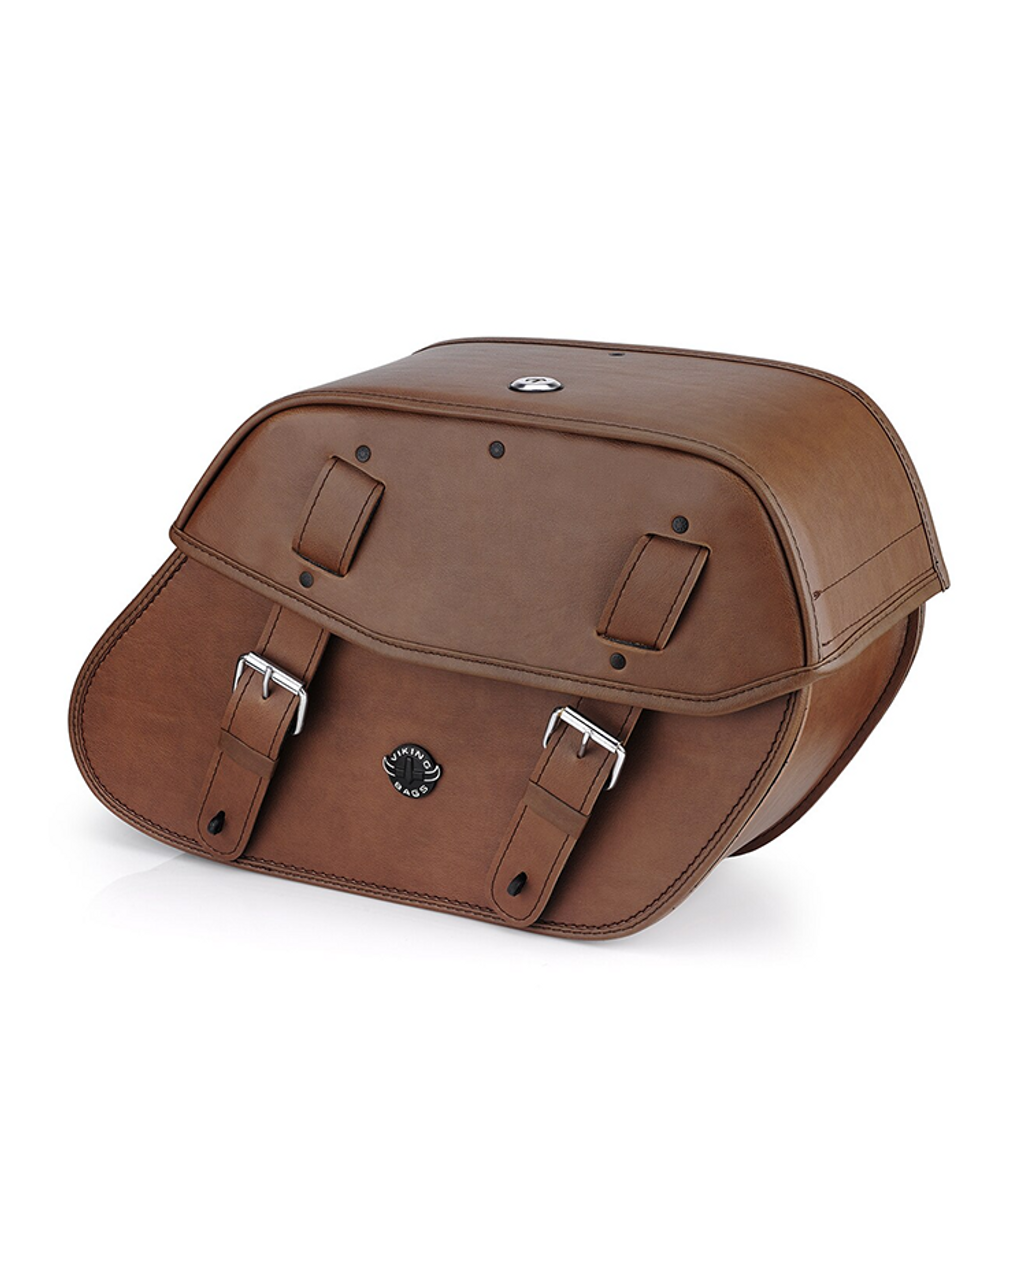 VikingBags Odin Brown Medium Double Strap Leather Motorcycle Saddlebags For Harley Softail Low Rider S FXLRS Main View